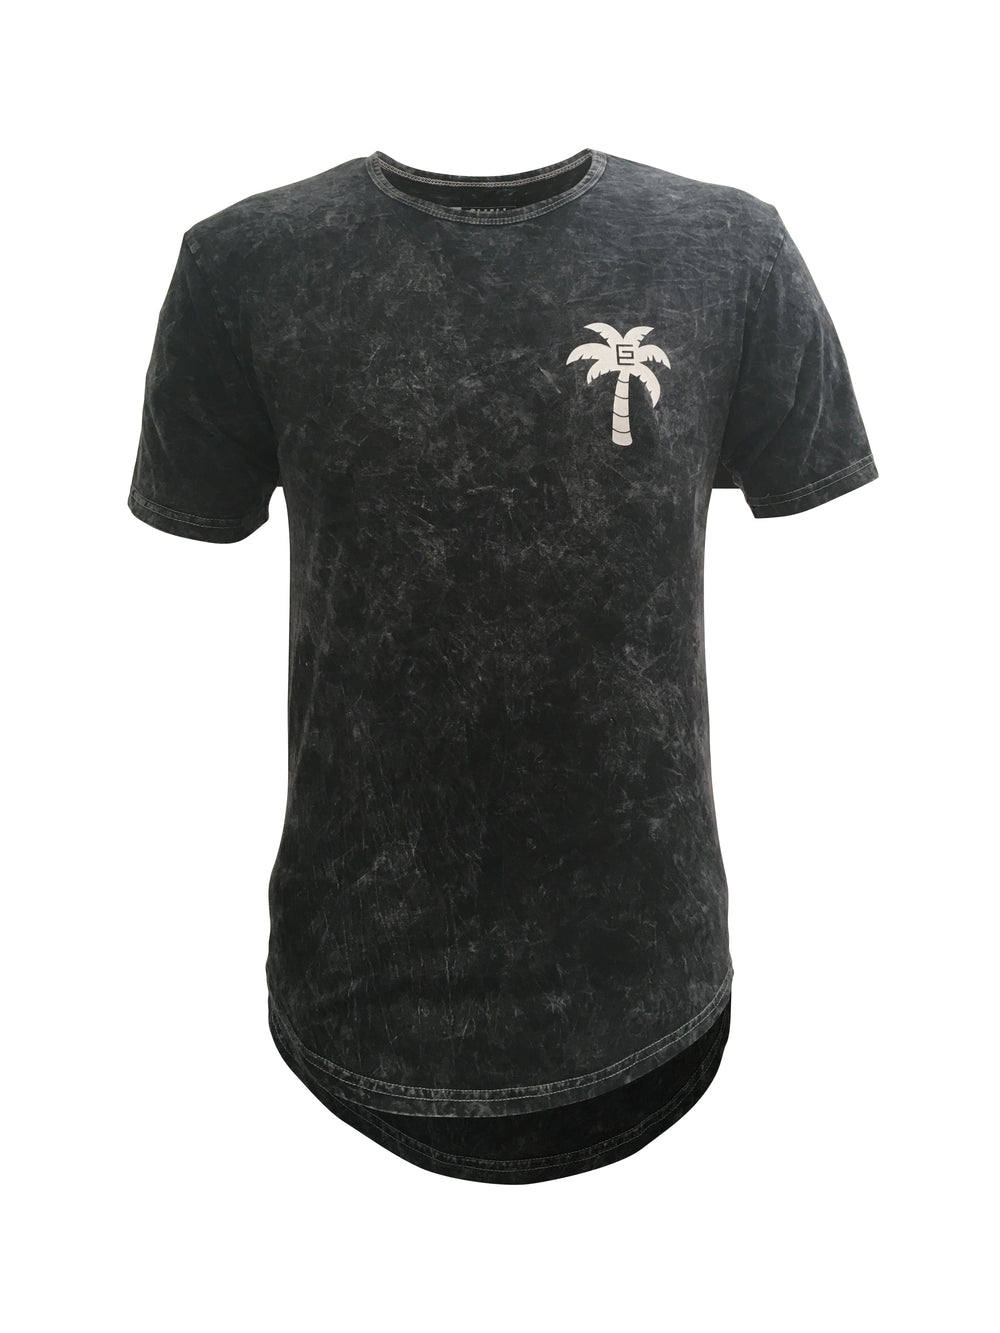 Gravitated Equations ( GRAV ) Clothing & Apparel - Eclipse Drop Tail Tee